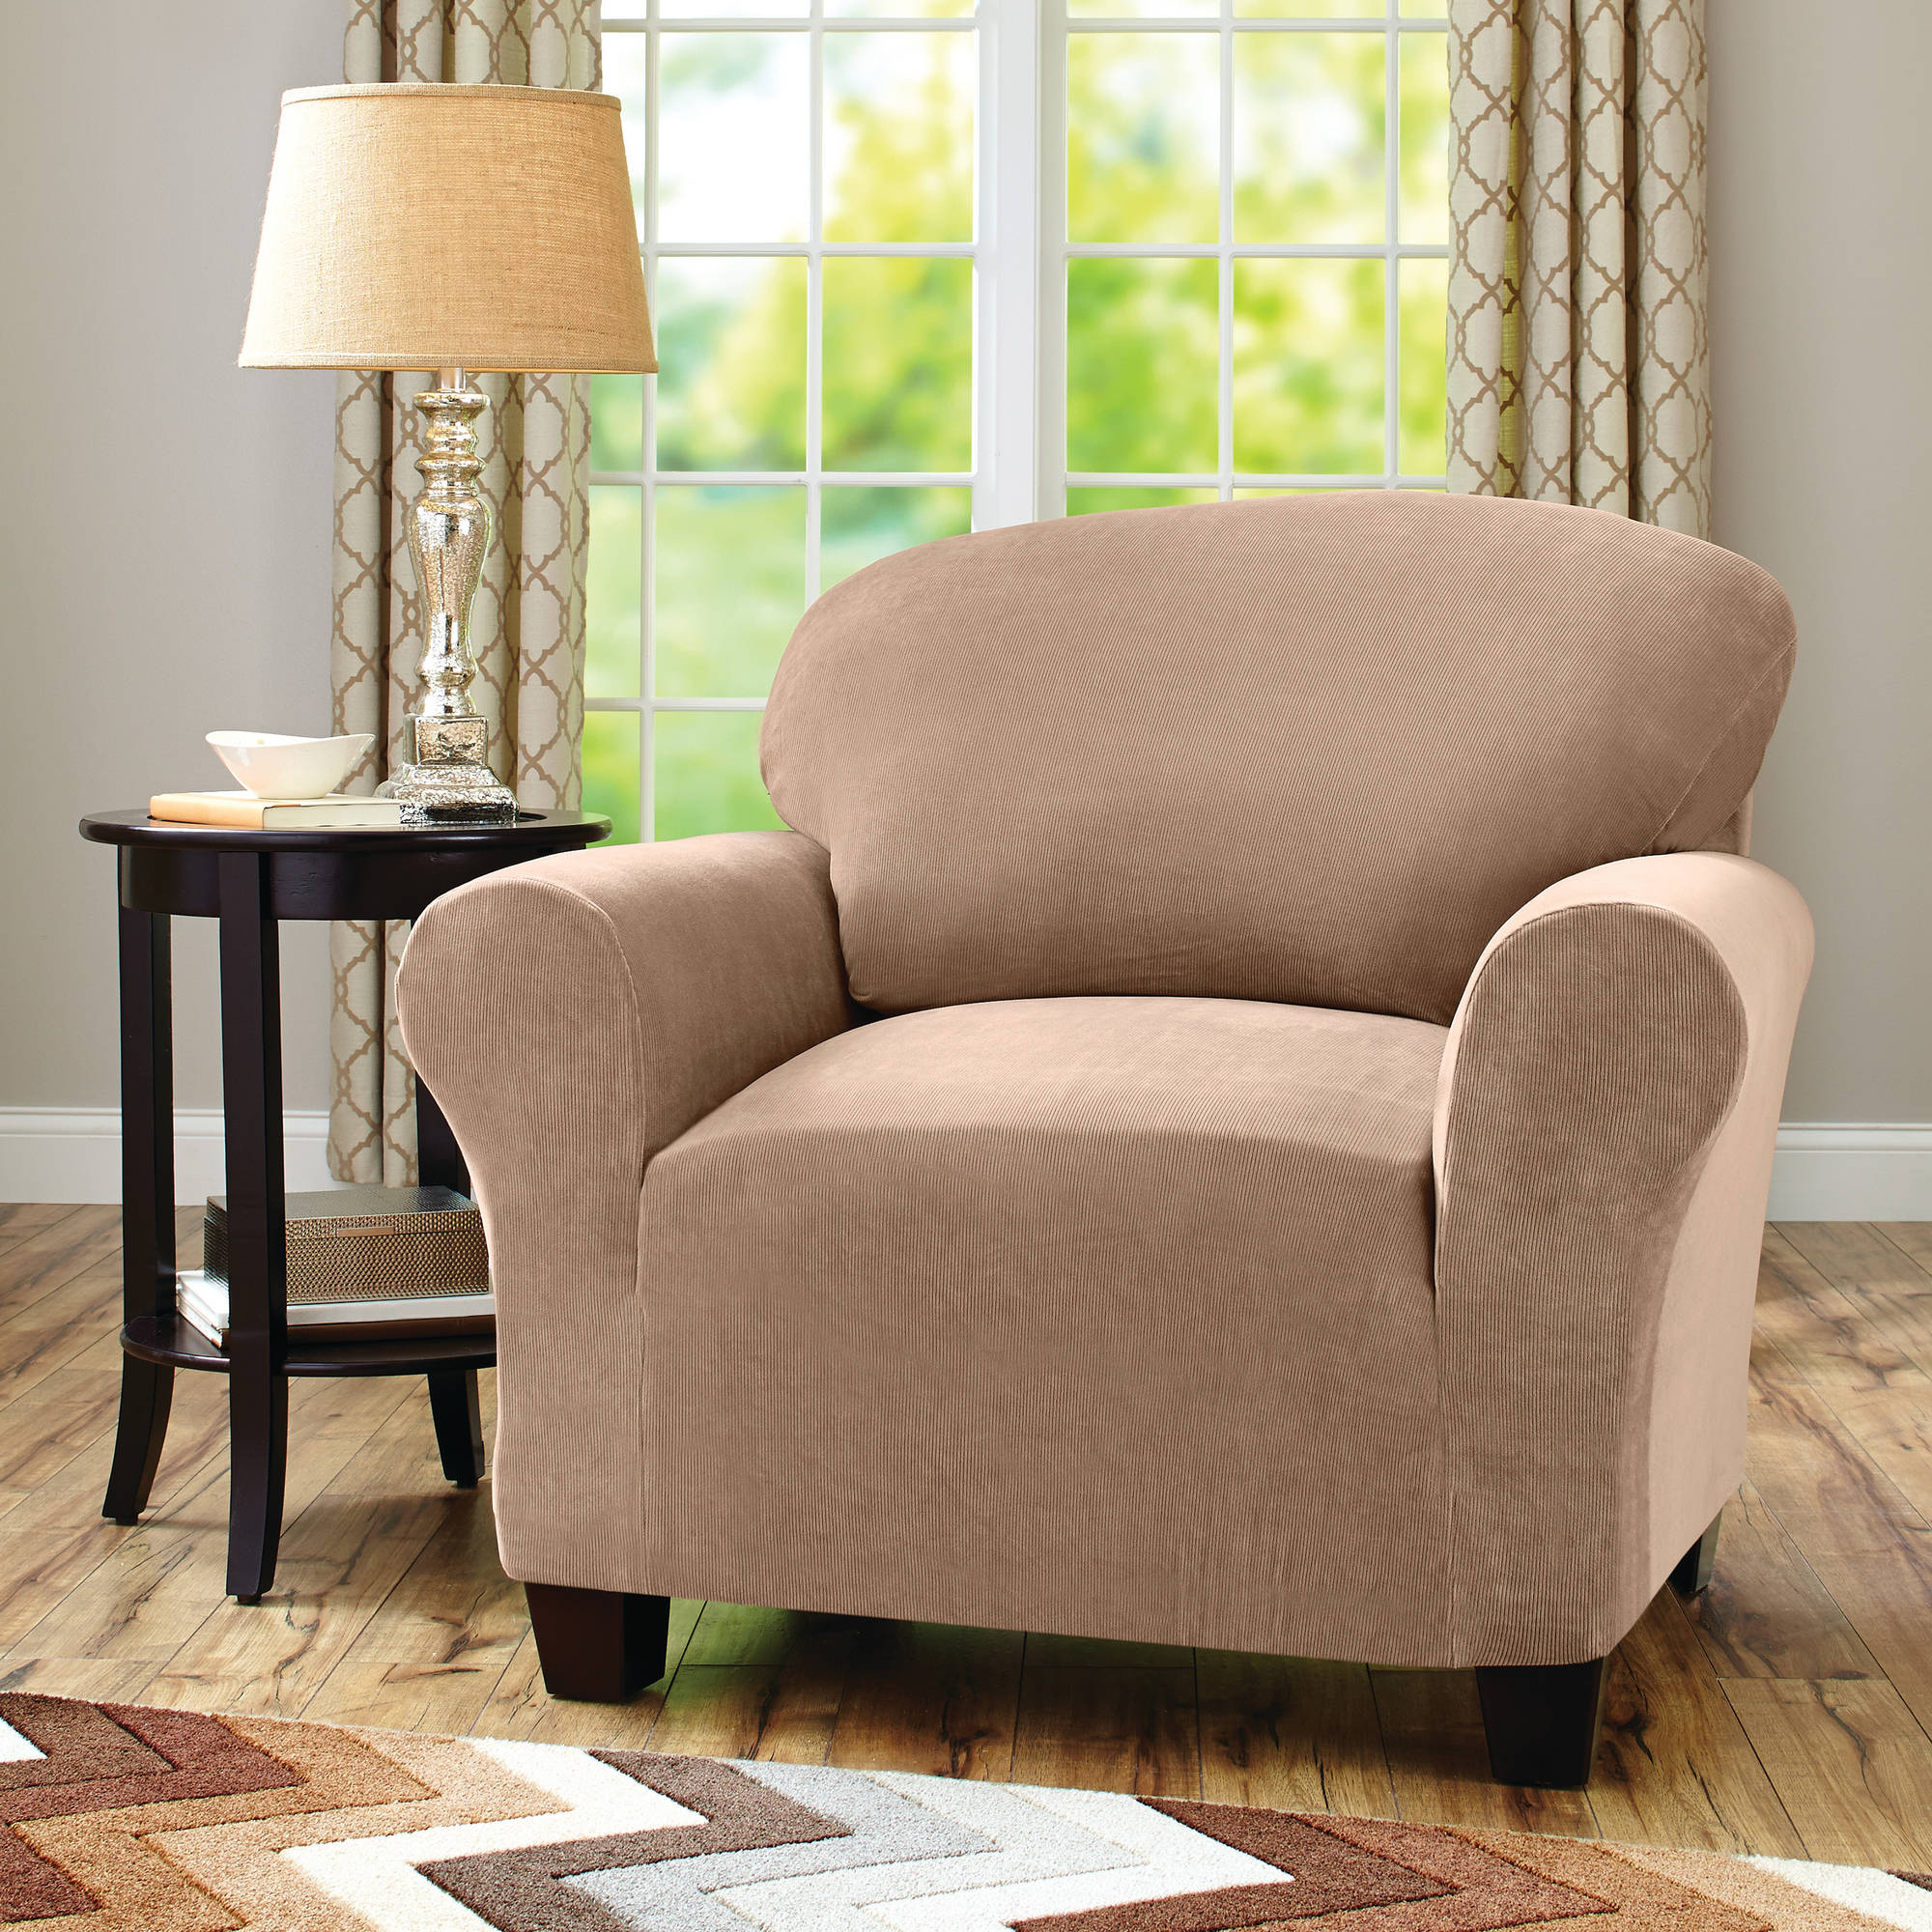 Better Homes And Gardens One Piece Stretch Fine Corduroy Chair In Well Known Sofa And Chair Slipcovers (View 11 of 20)